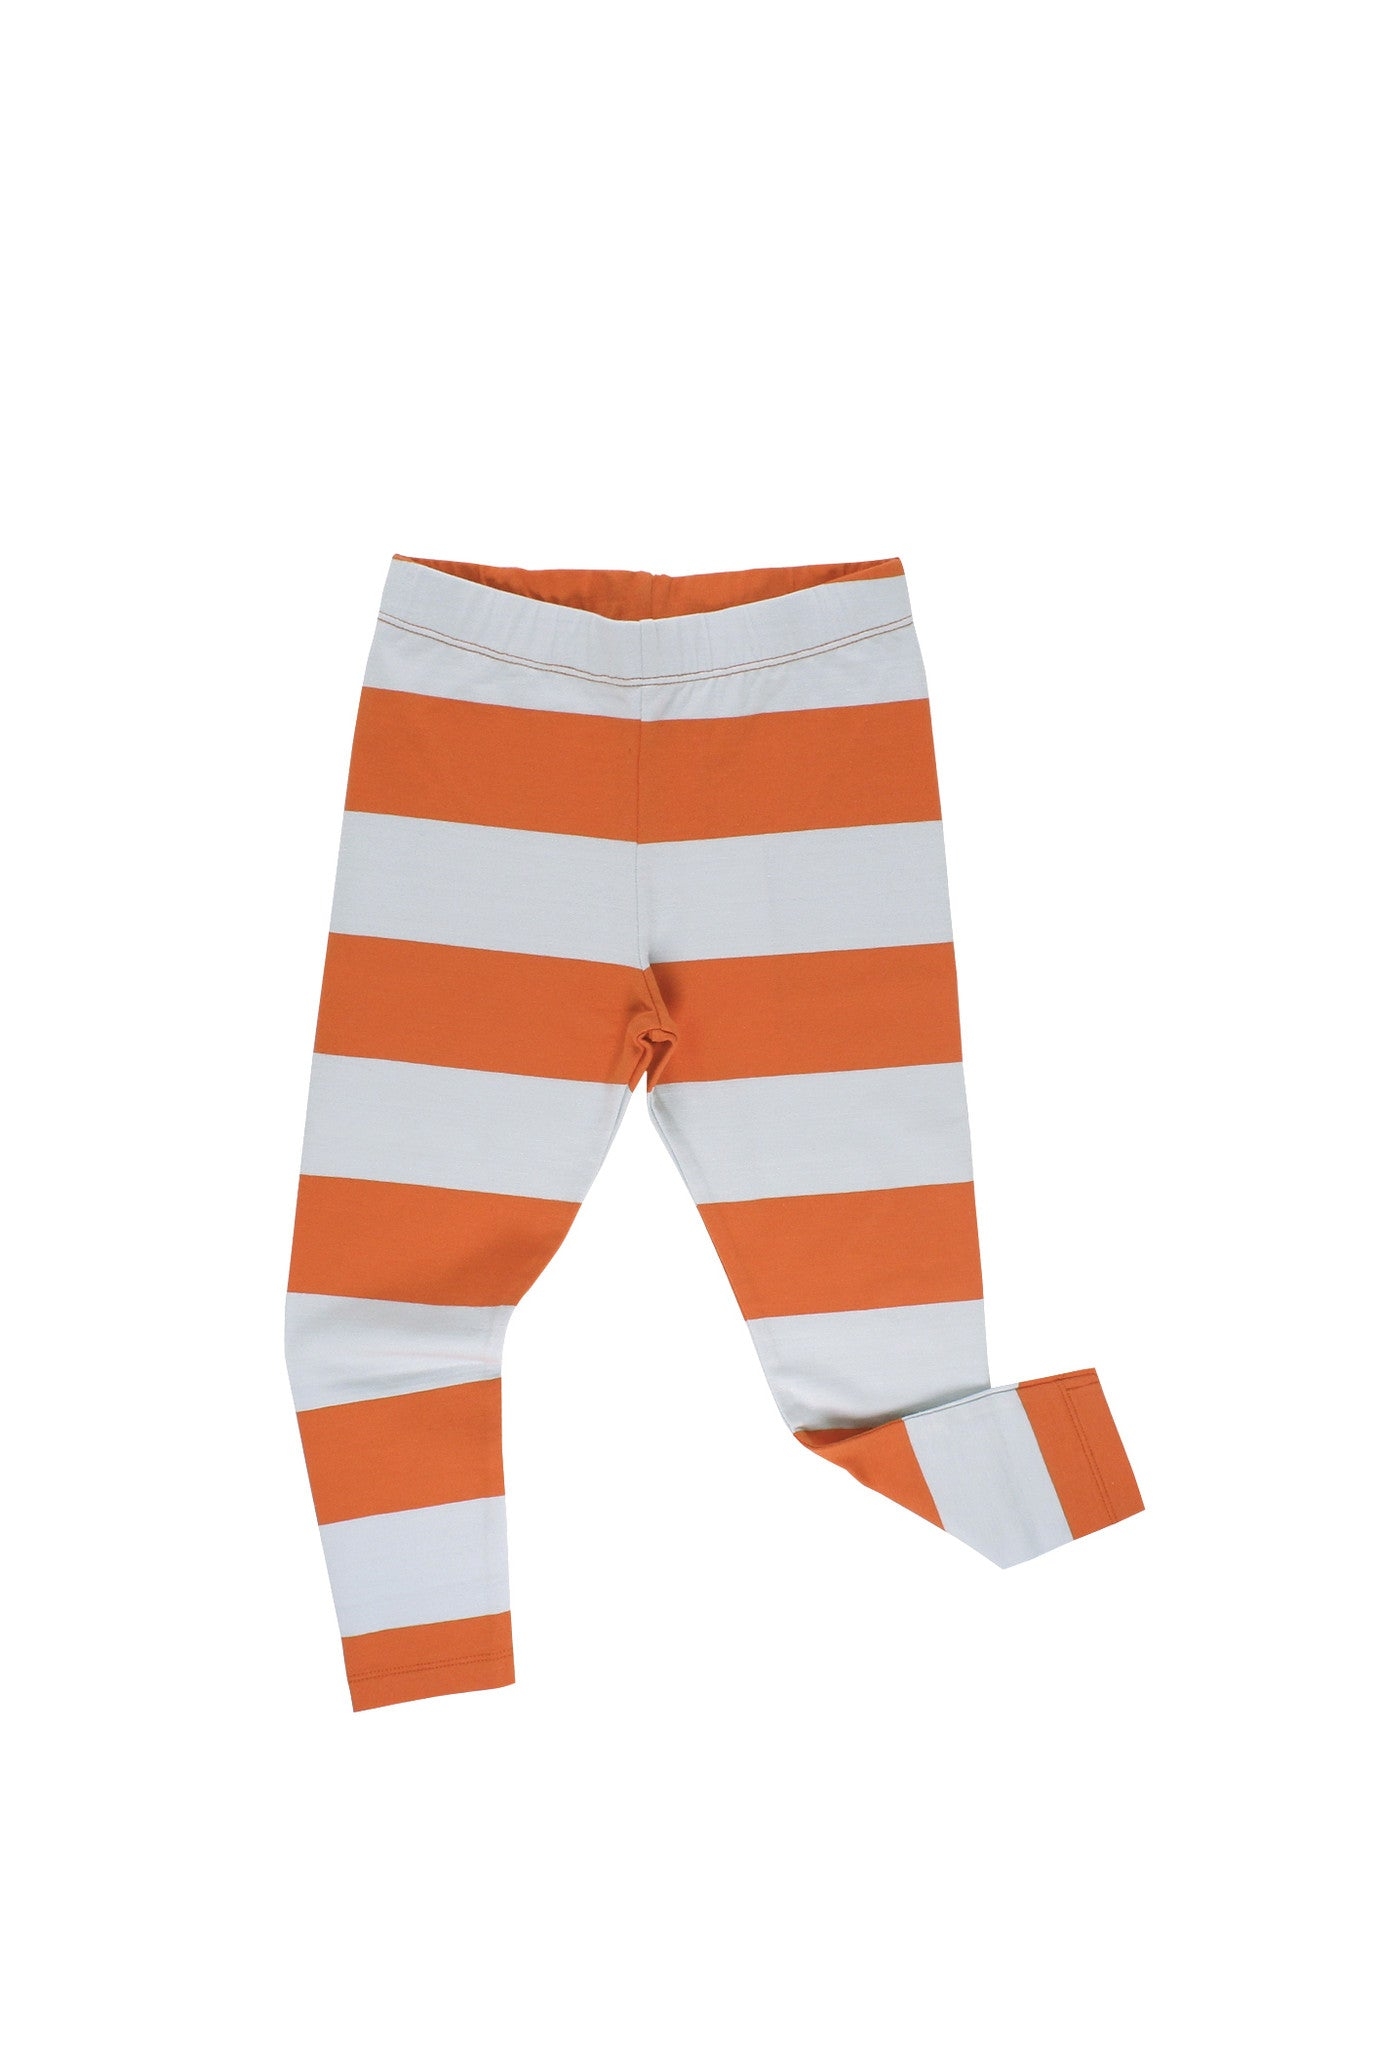 Big Stripes Pant Light Blue - Mini Mischief